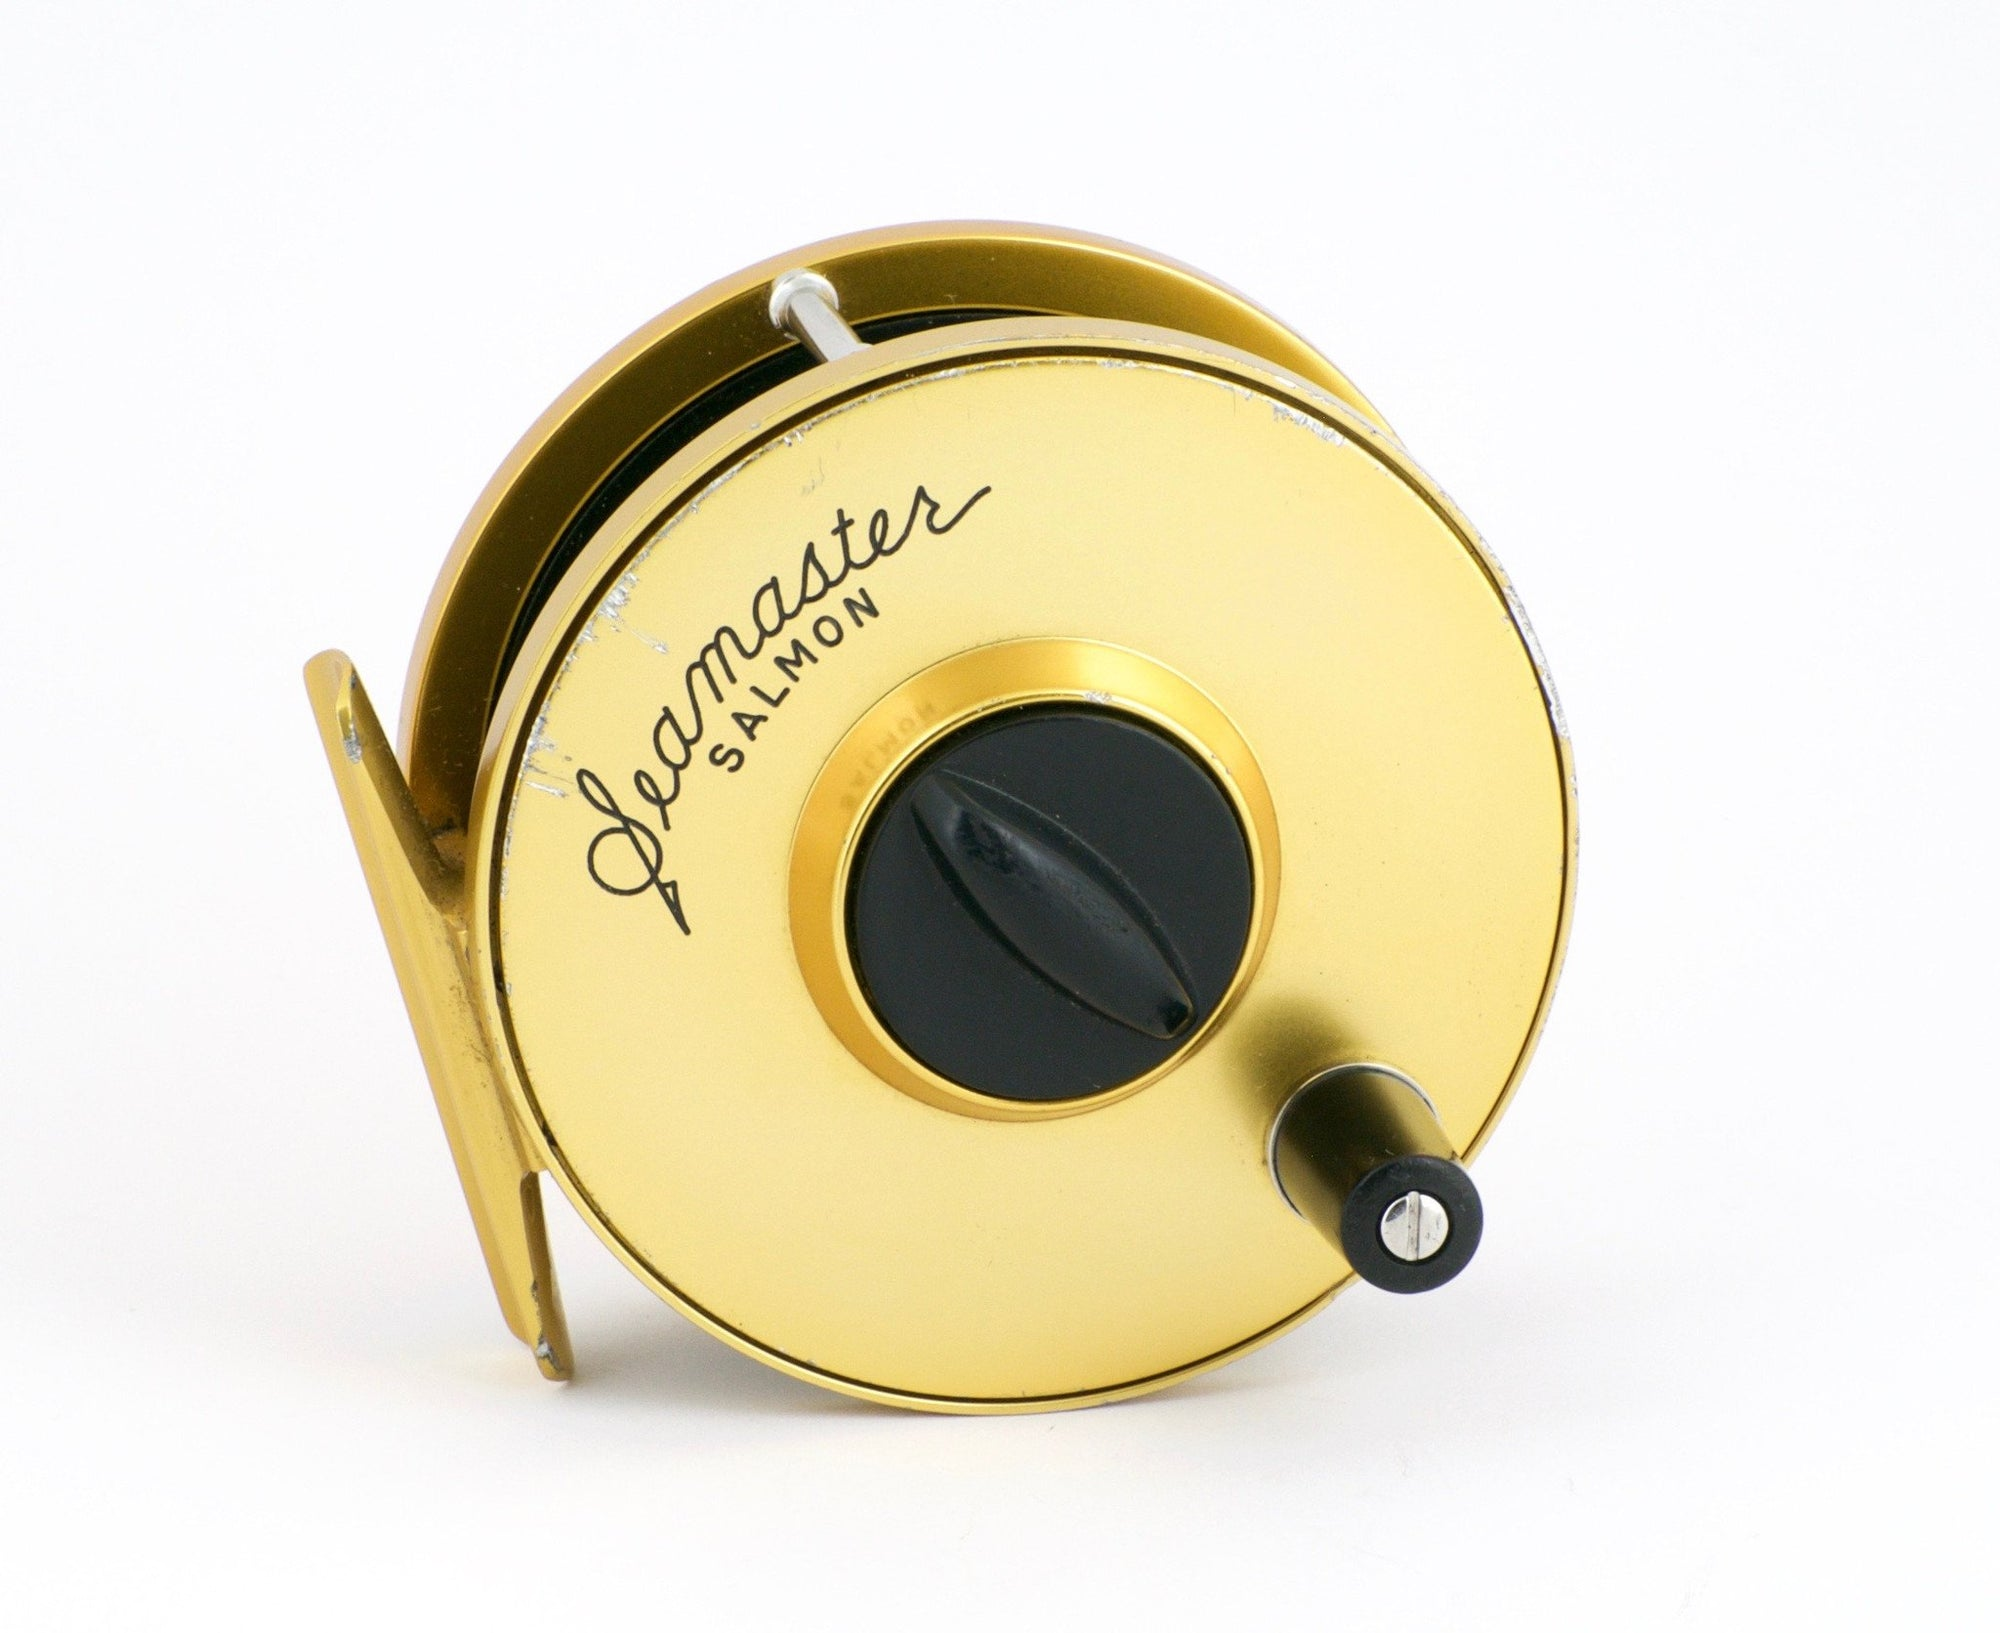 Seamaster Anti-Reverse Salmon Fly Reel